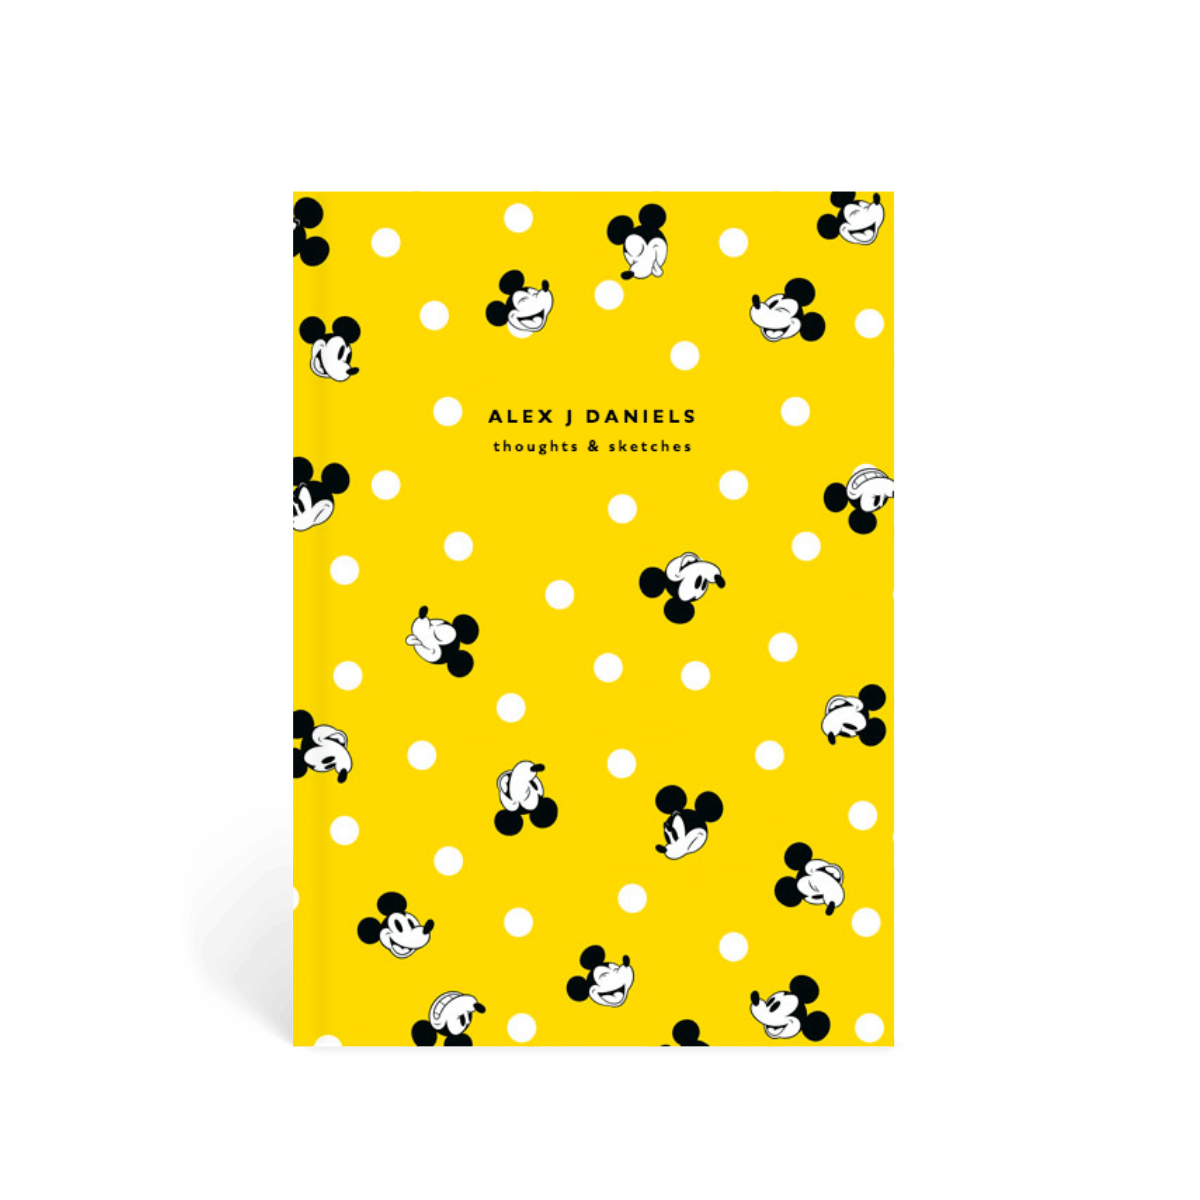 Https%3a%2f%2fwww.papier.com%2fproduct image%2f55858%2f25%2fmickey polka 13416 vorderseite 1542303888.png?ixlib=rb 1.1